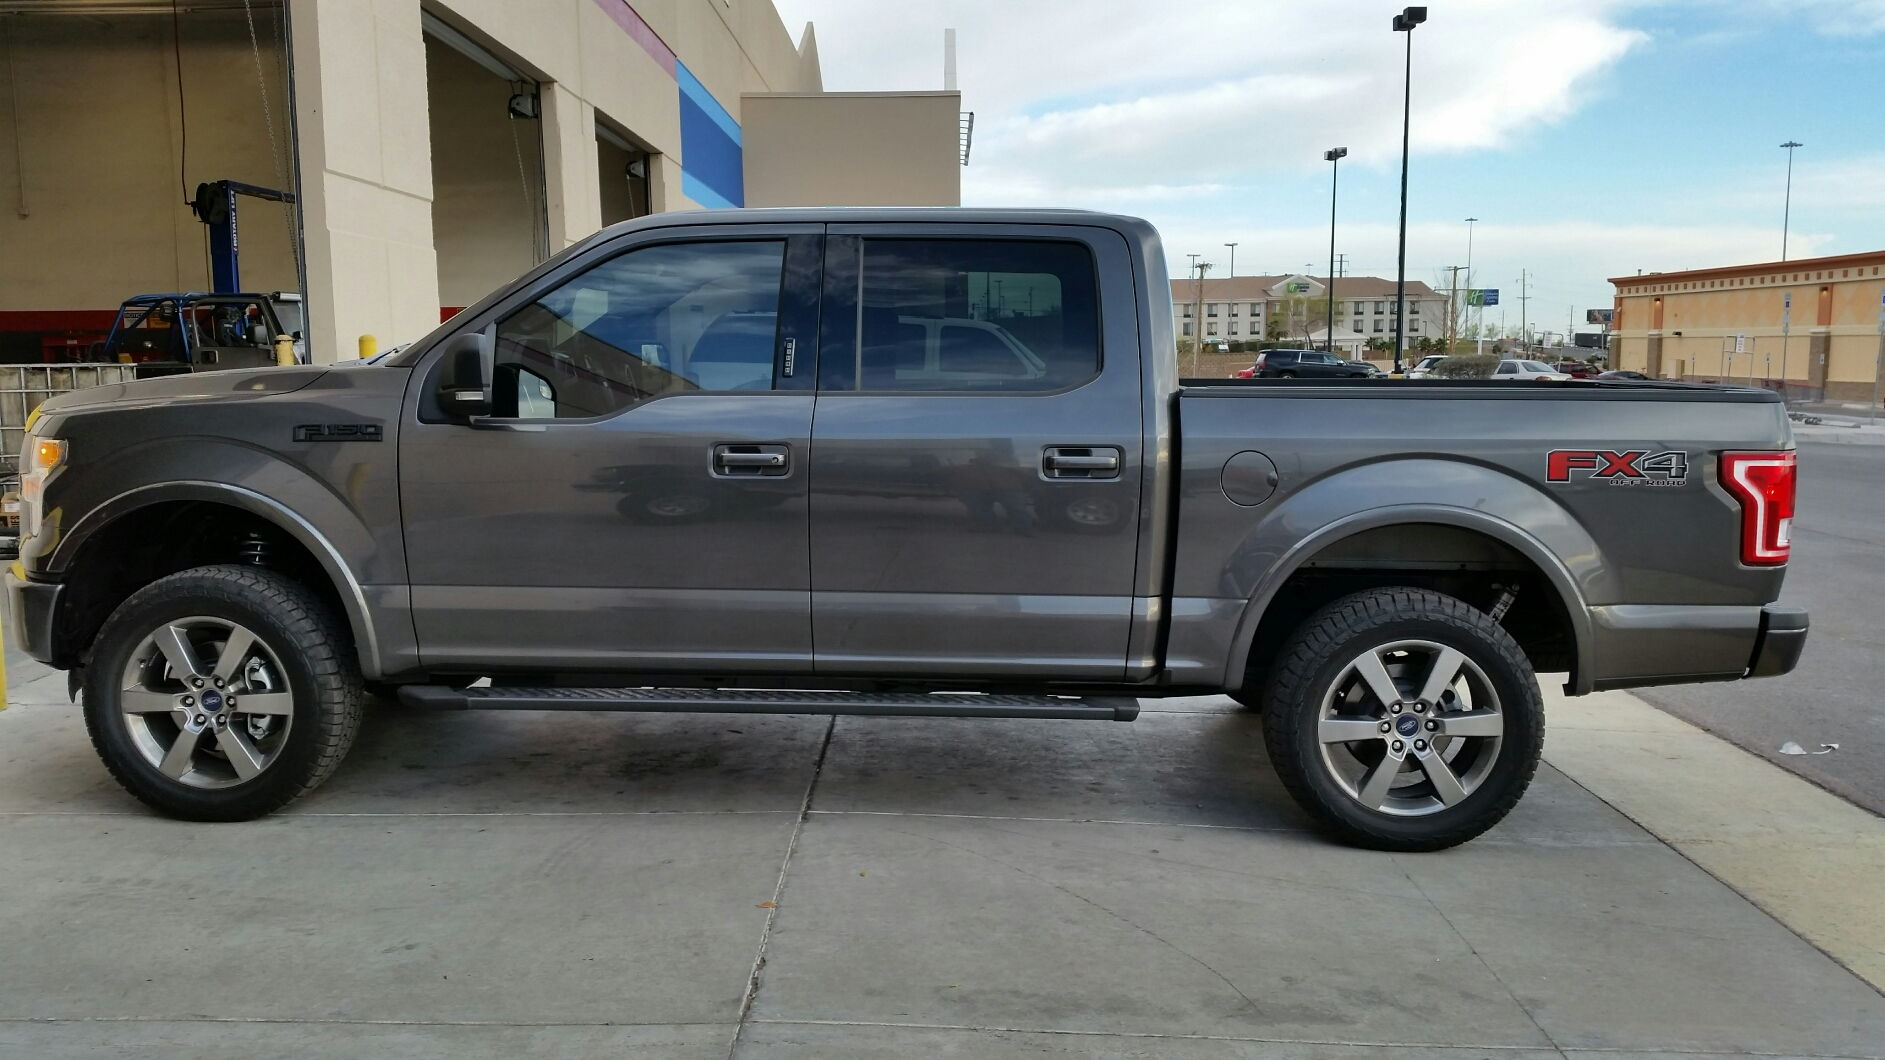 302a Package F150 Car Update Price And Reviews 2019 2020 Stereo Wiring Diagram Ford Forum Community Of Truck Fans Post Pics Your Xlt Lariat Sports Page